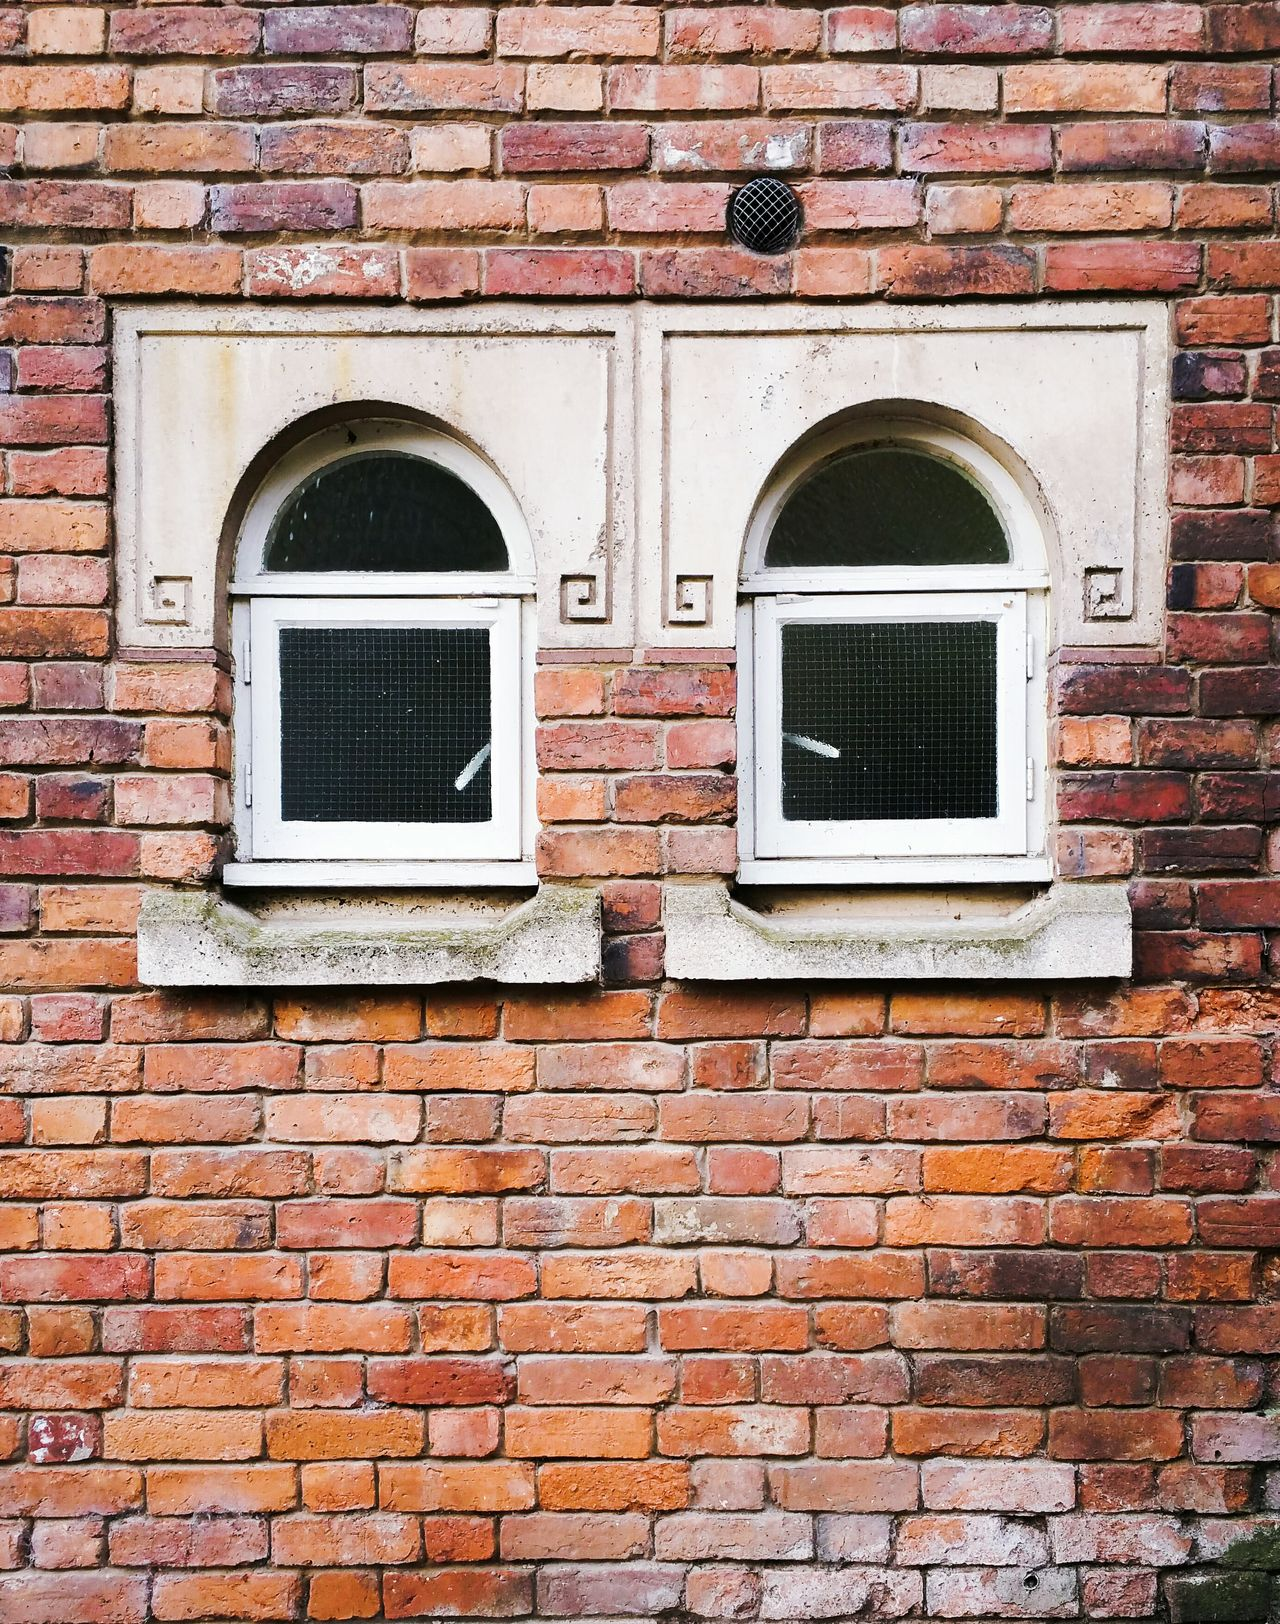 2 Little Windows Brick Wall Building Exterior Architecture Built Structure Outdoors No People Full Frame Day Air Duct Windows Bricks England, UK Britain Red Cute House City Architecture Cityscape Minimalist Architecture Detail